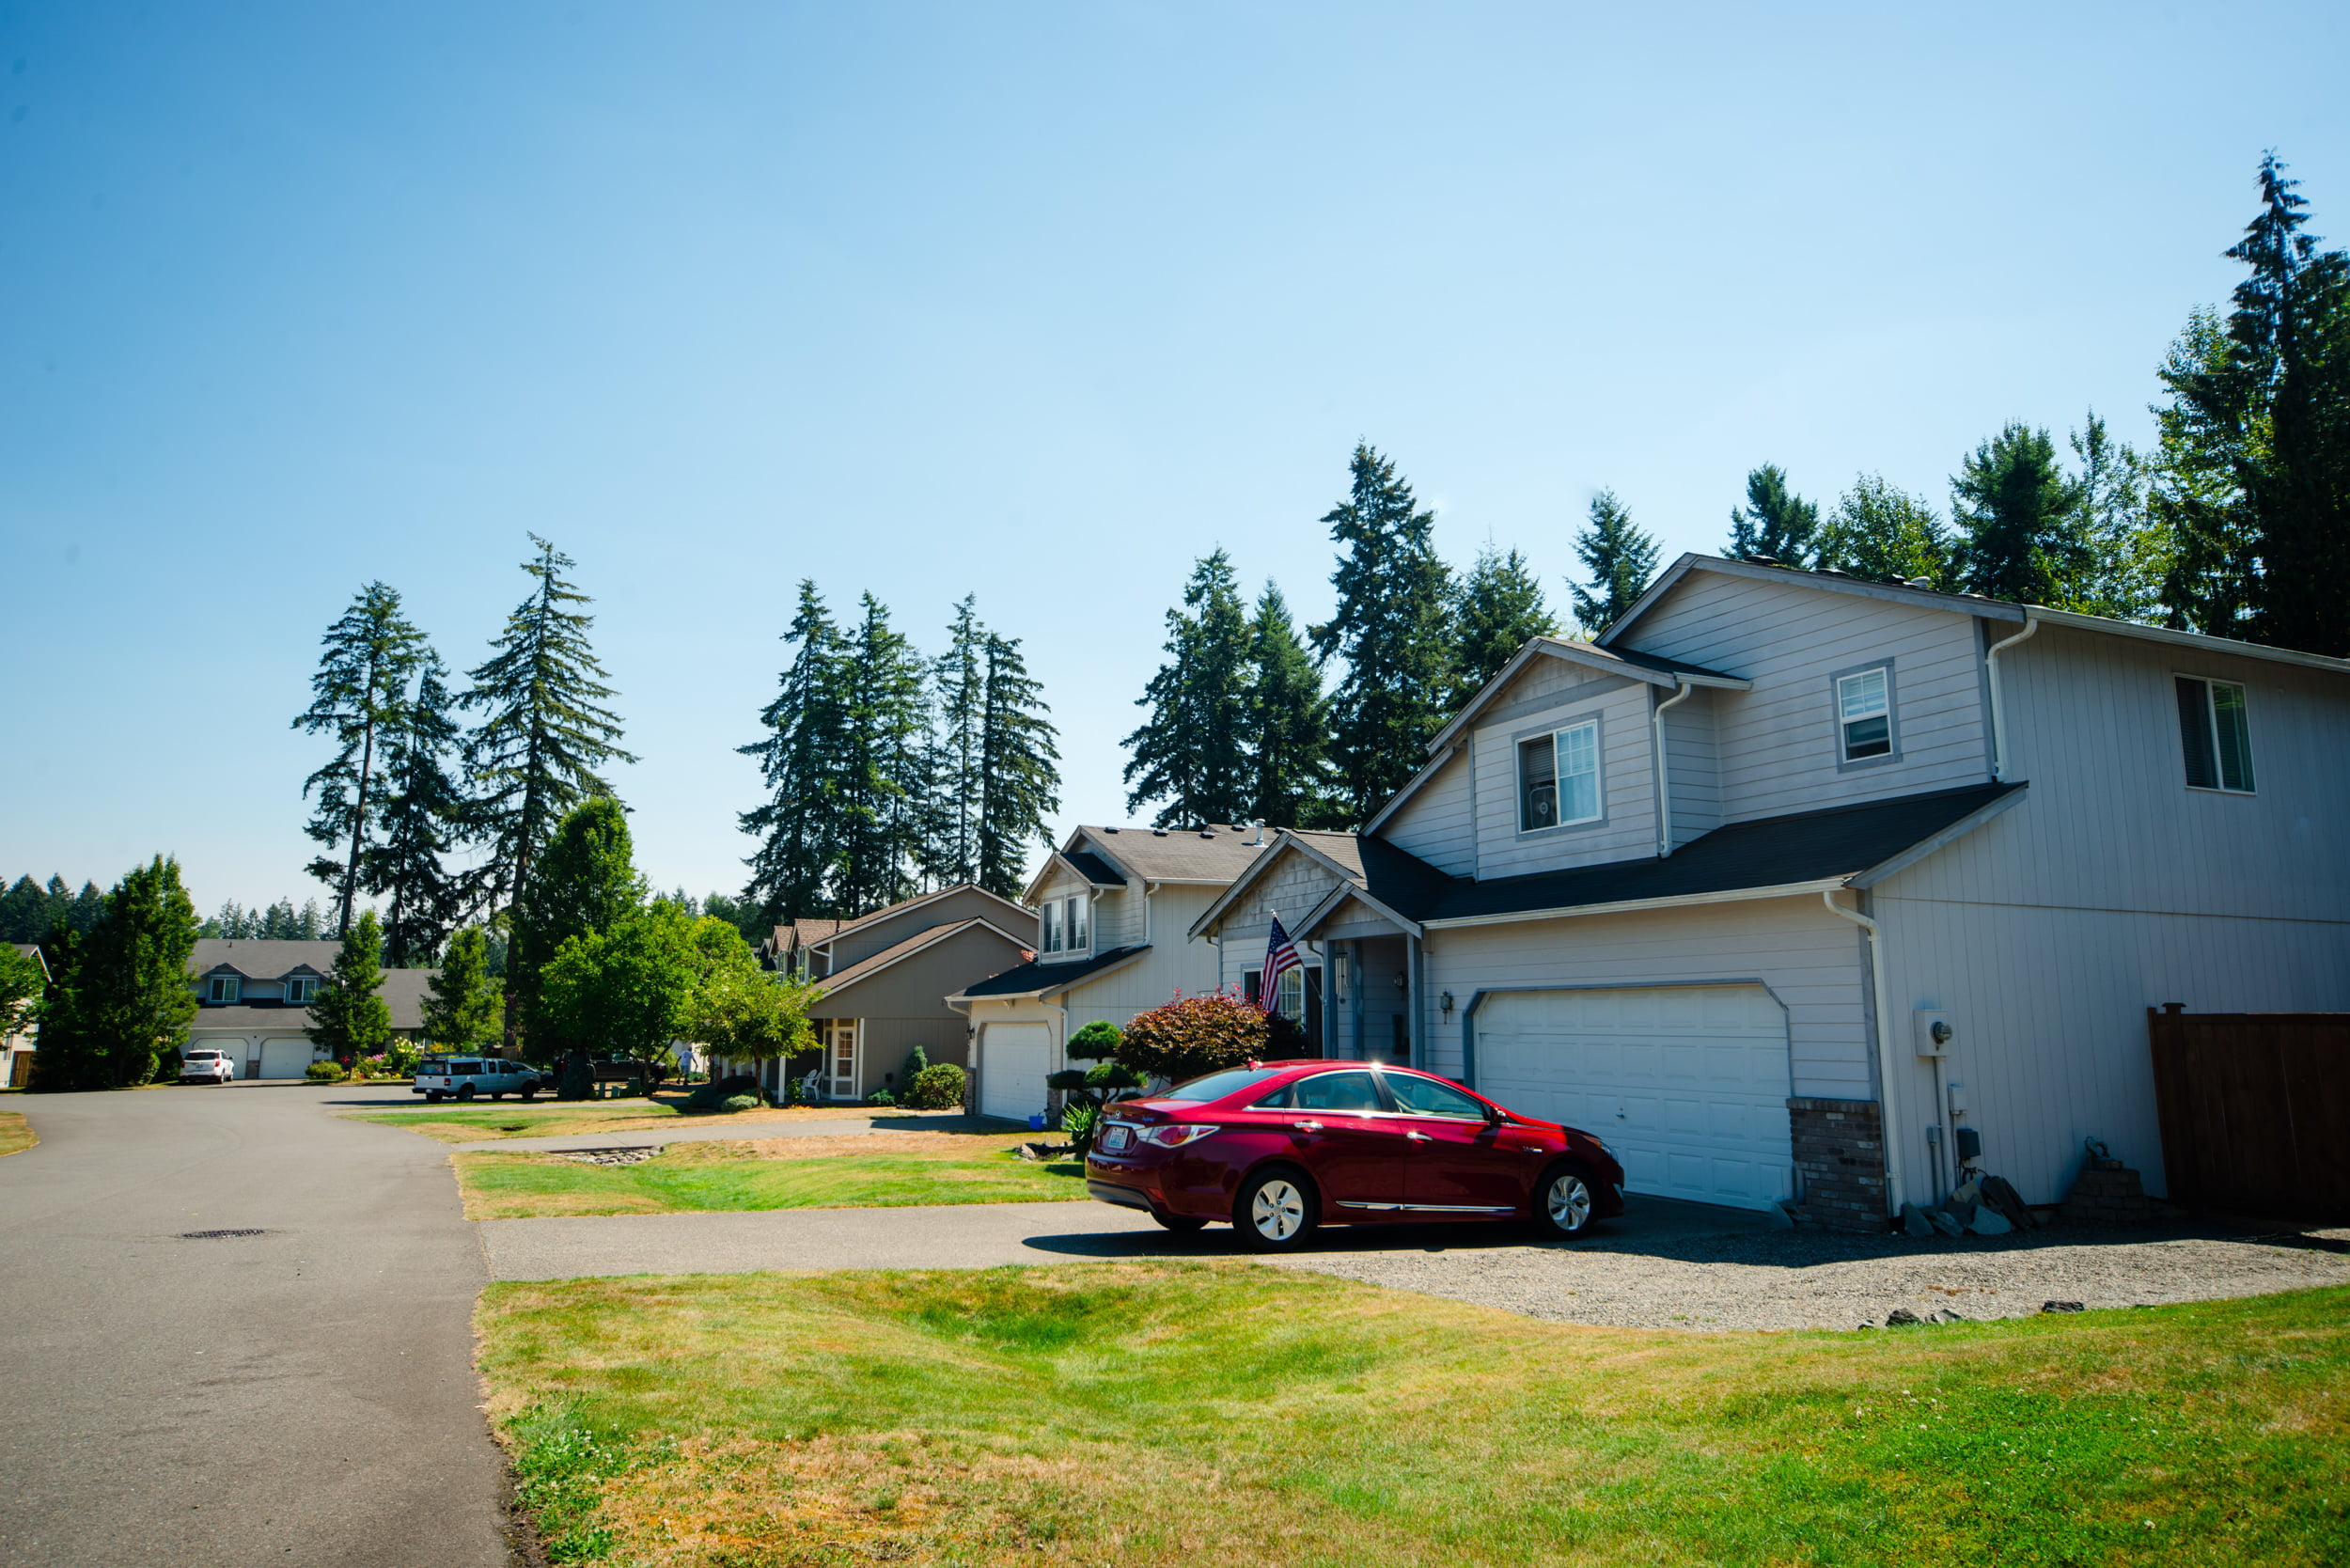 houses in puyallup wa